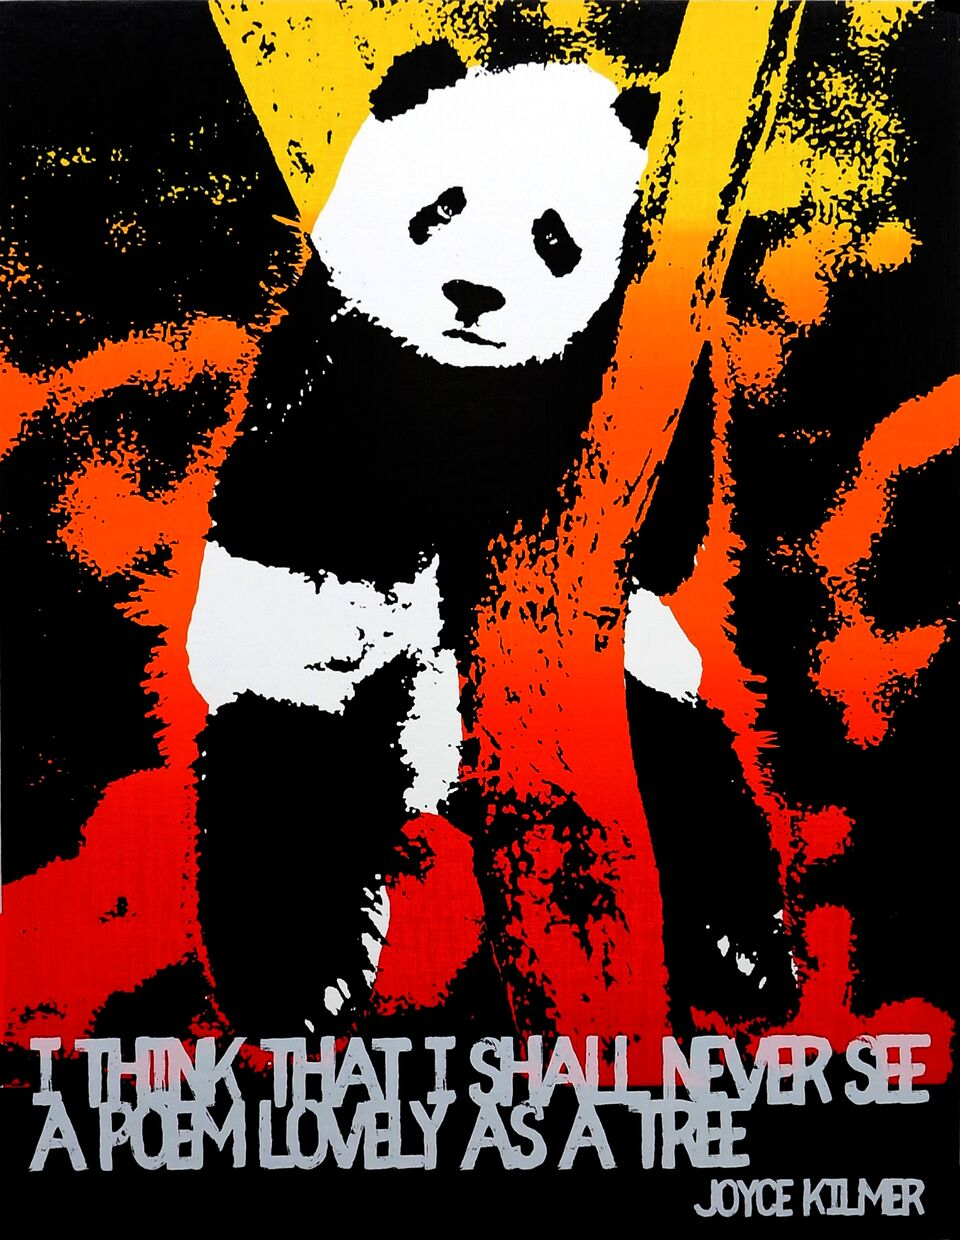 Motivational Panda (Joyce Kilmer)